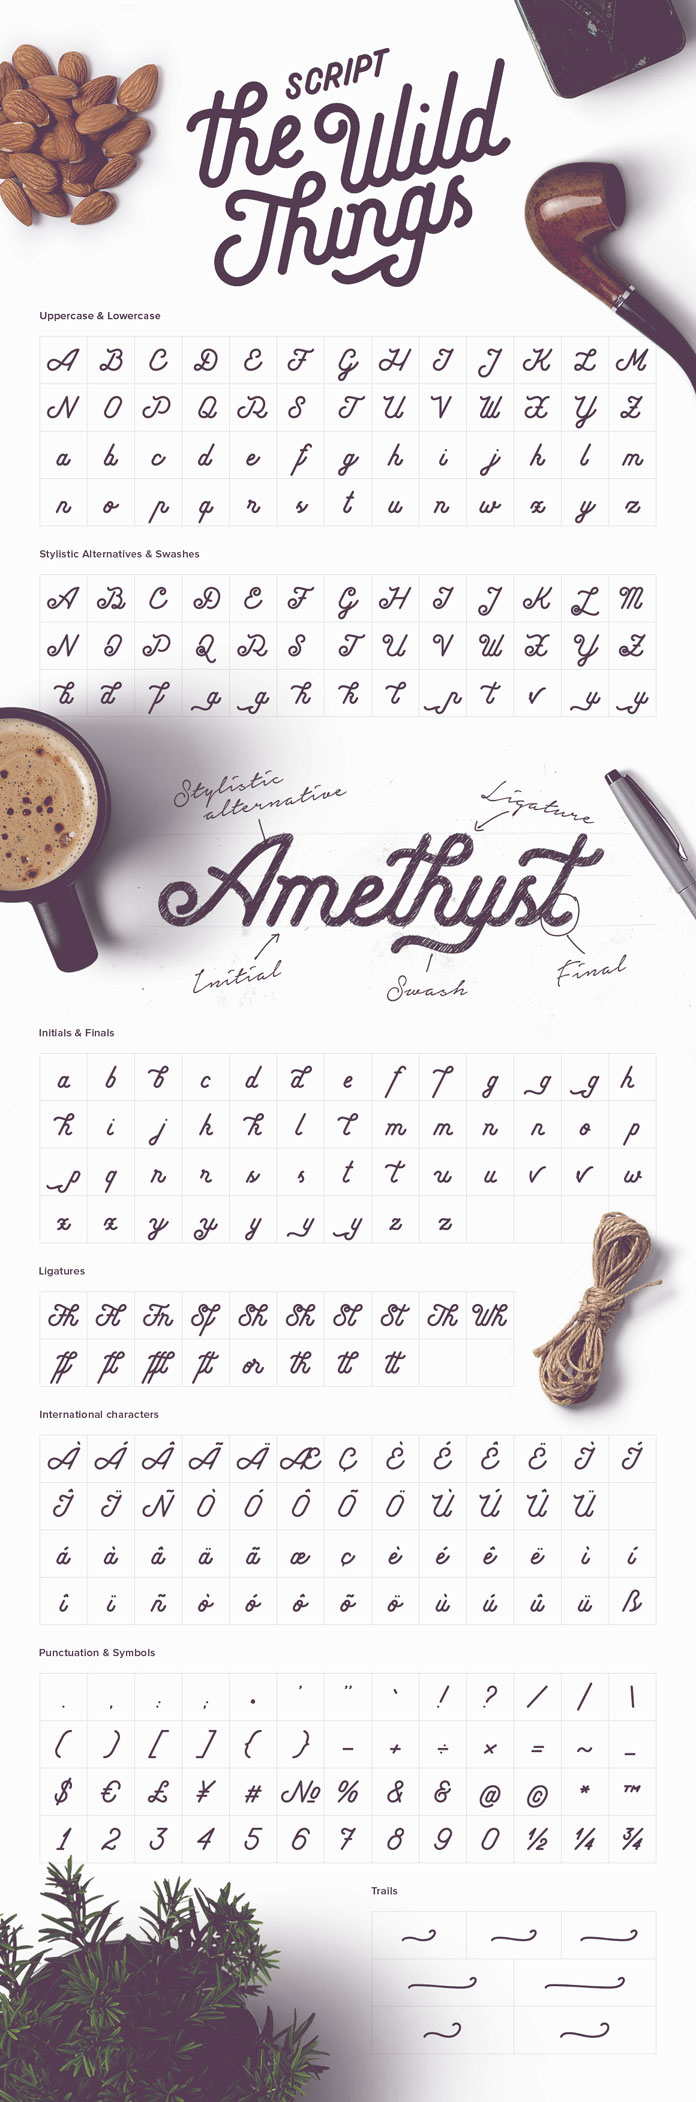 An overview of the Script typeface with all uppercases and lowercases, stylistic alternatives and swashes, initials and finals, ligatures, international characters, punctuation and symbols, trails.